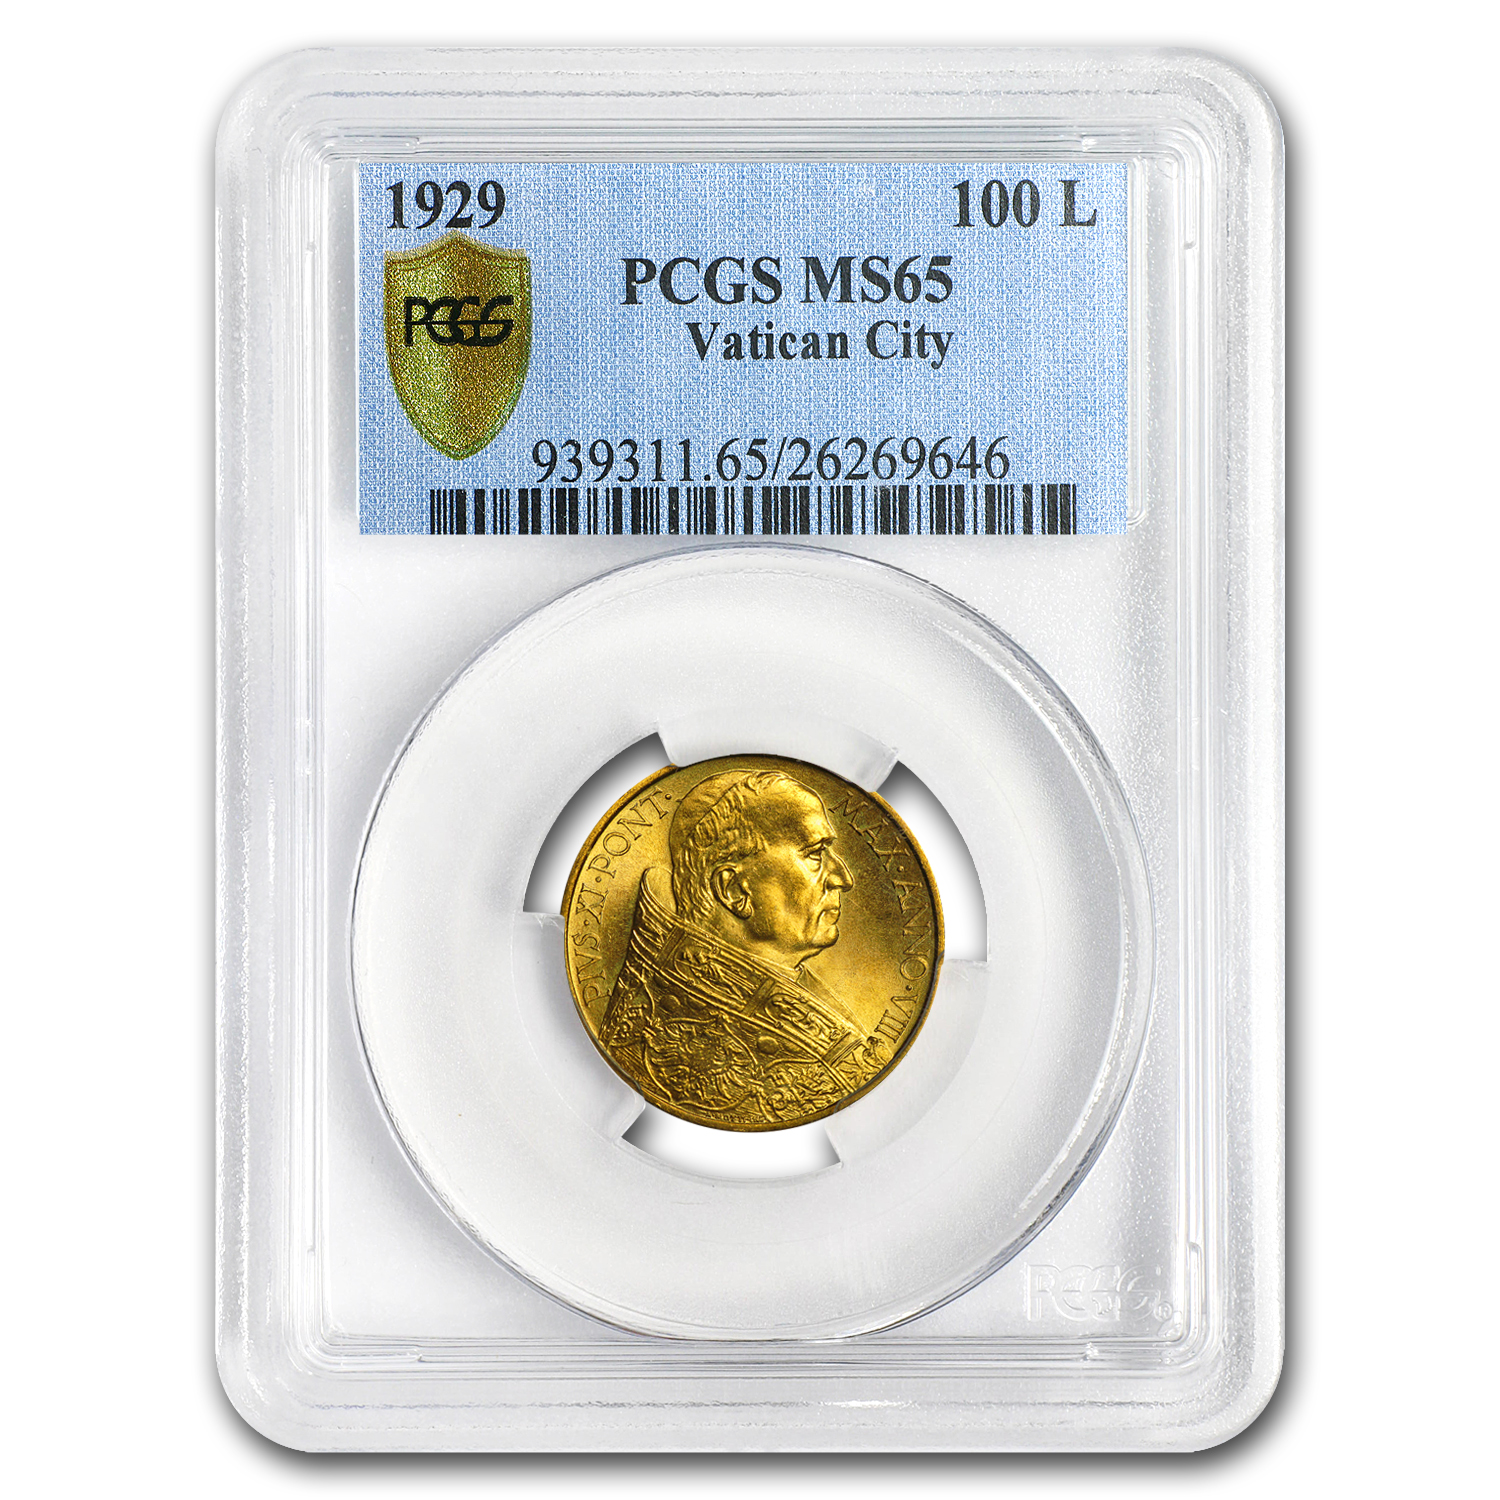 1929 Vatican City Gold 100 Lire Pope Pius XI MS-65 PCGS